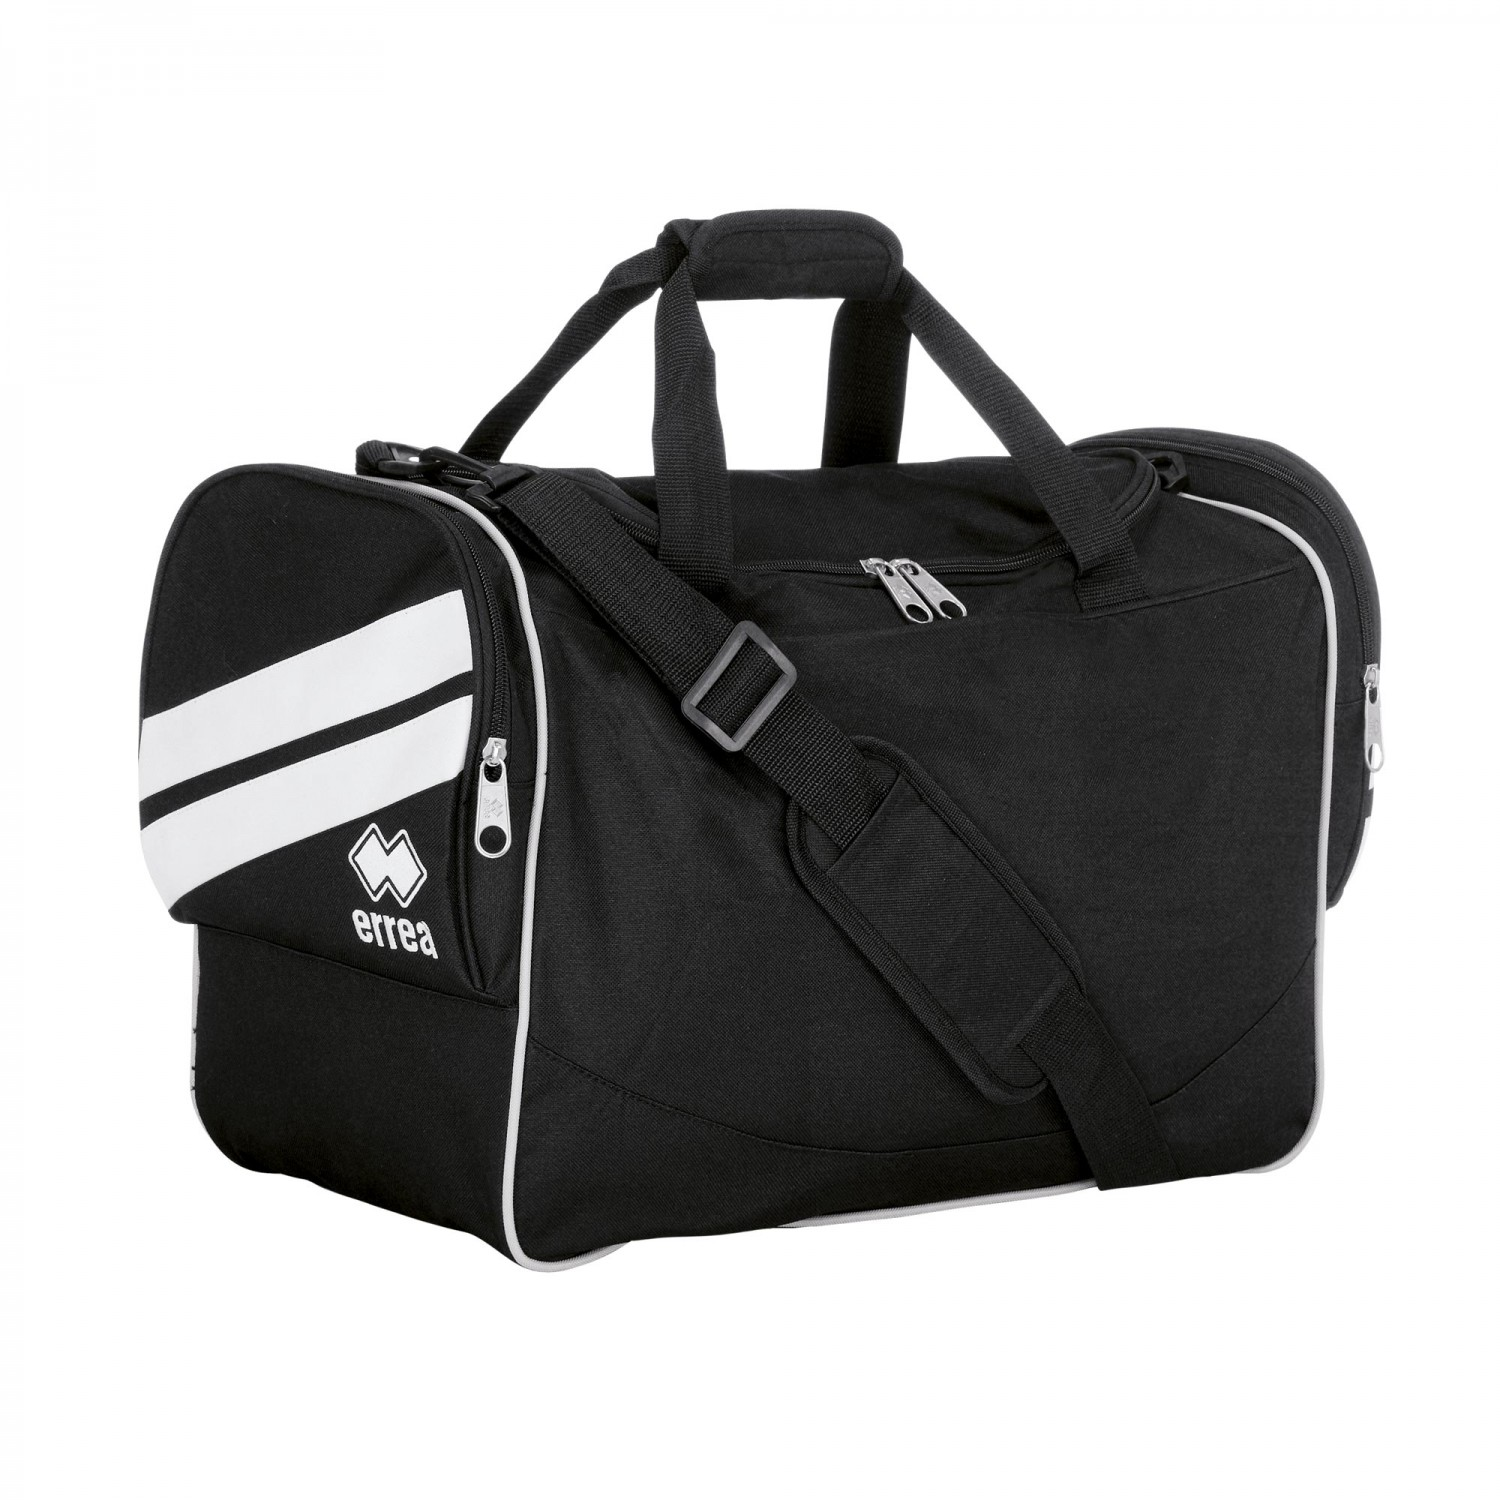 KR - Gym bag